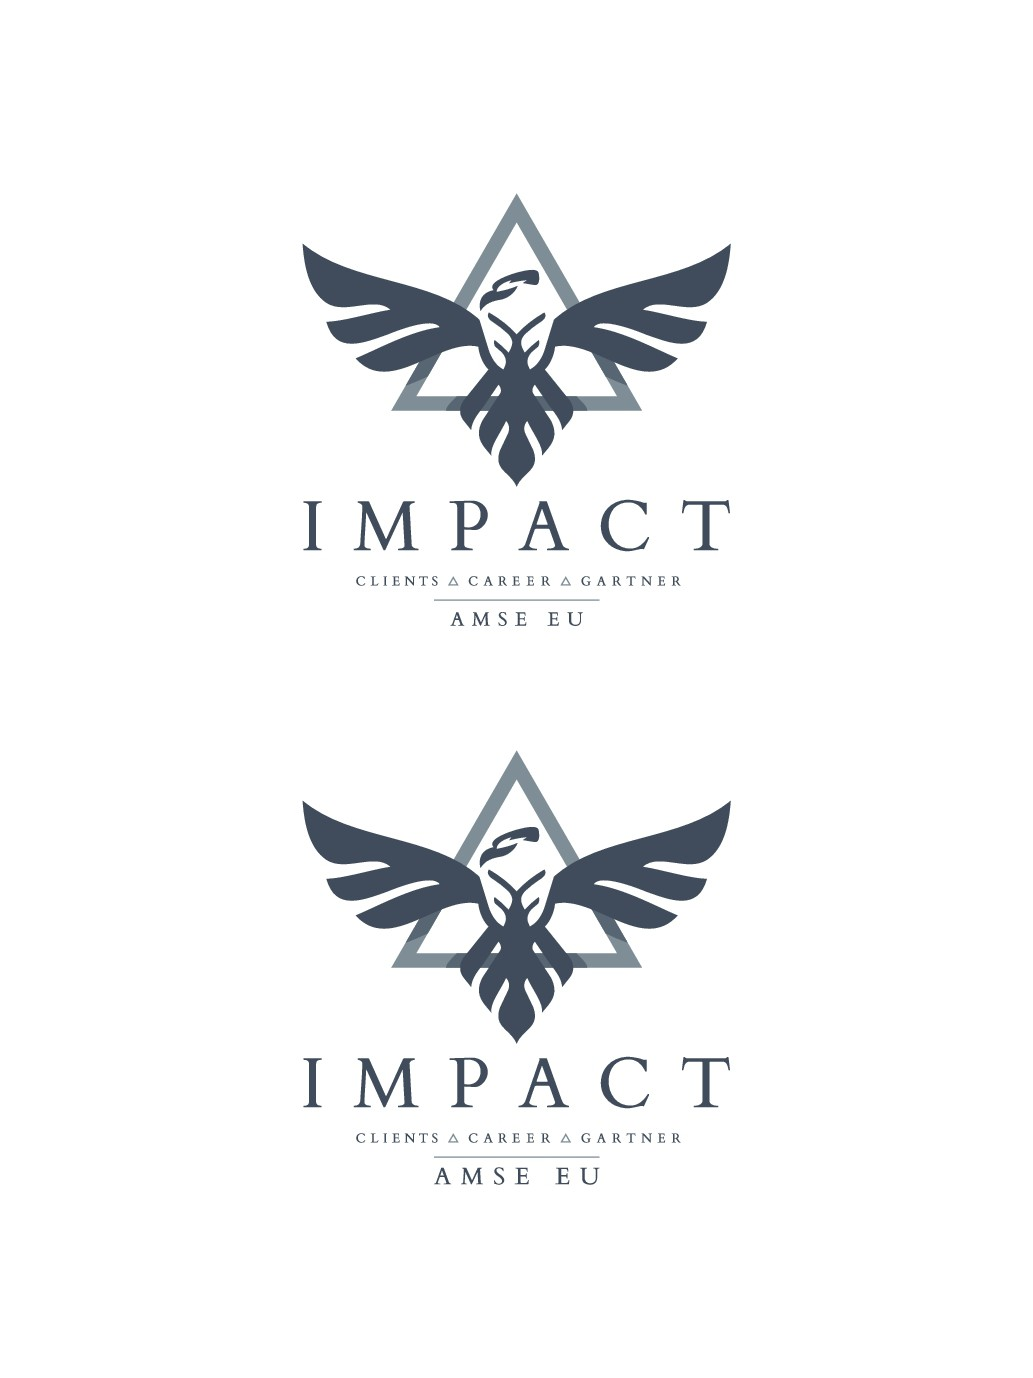 Logo needed to unify an identity for 270 person sales division